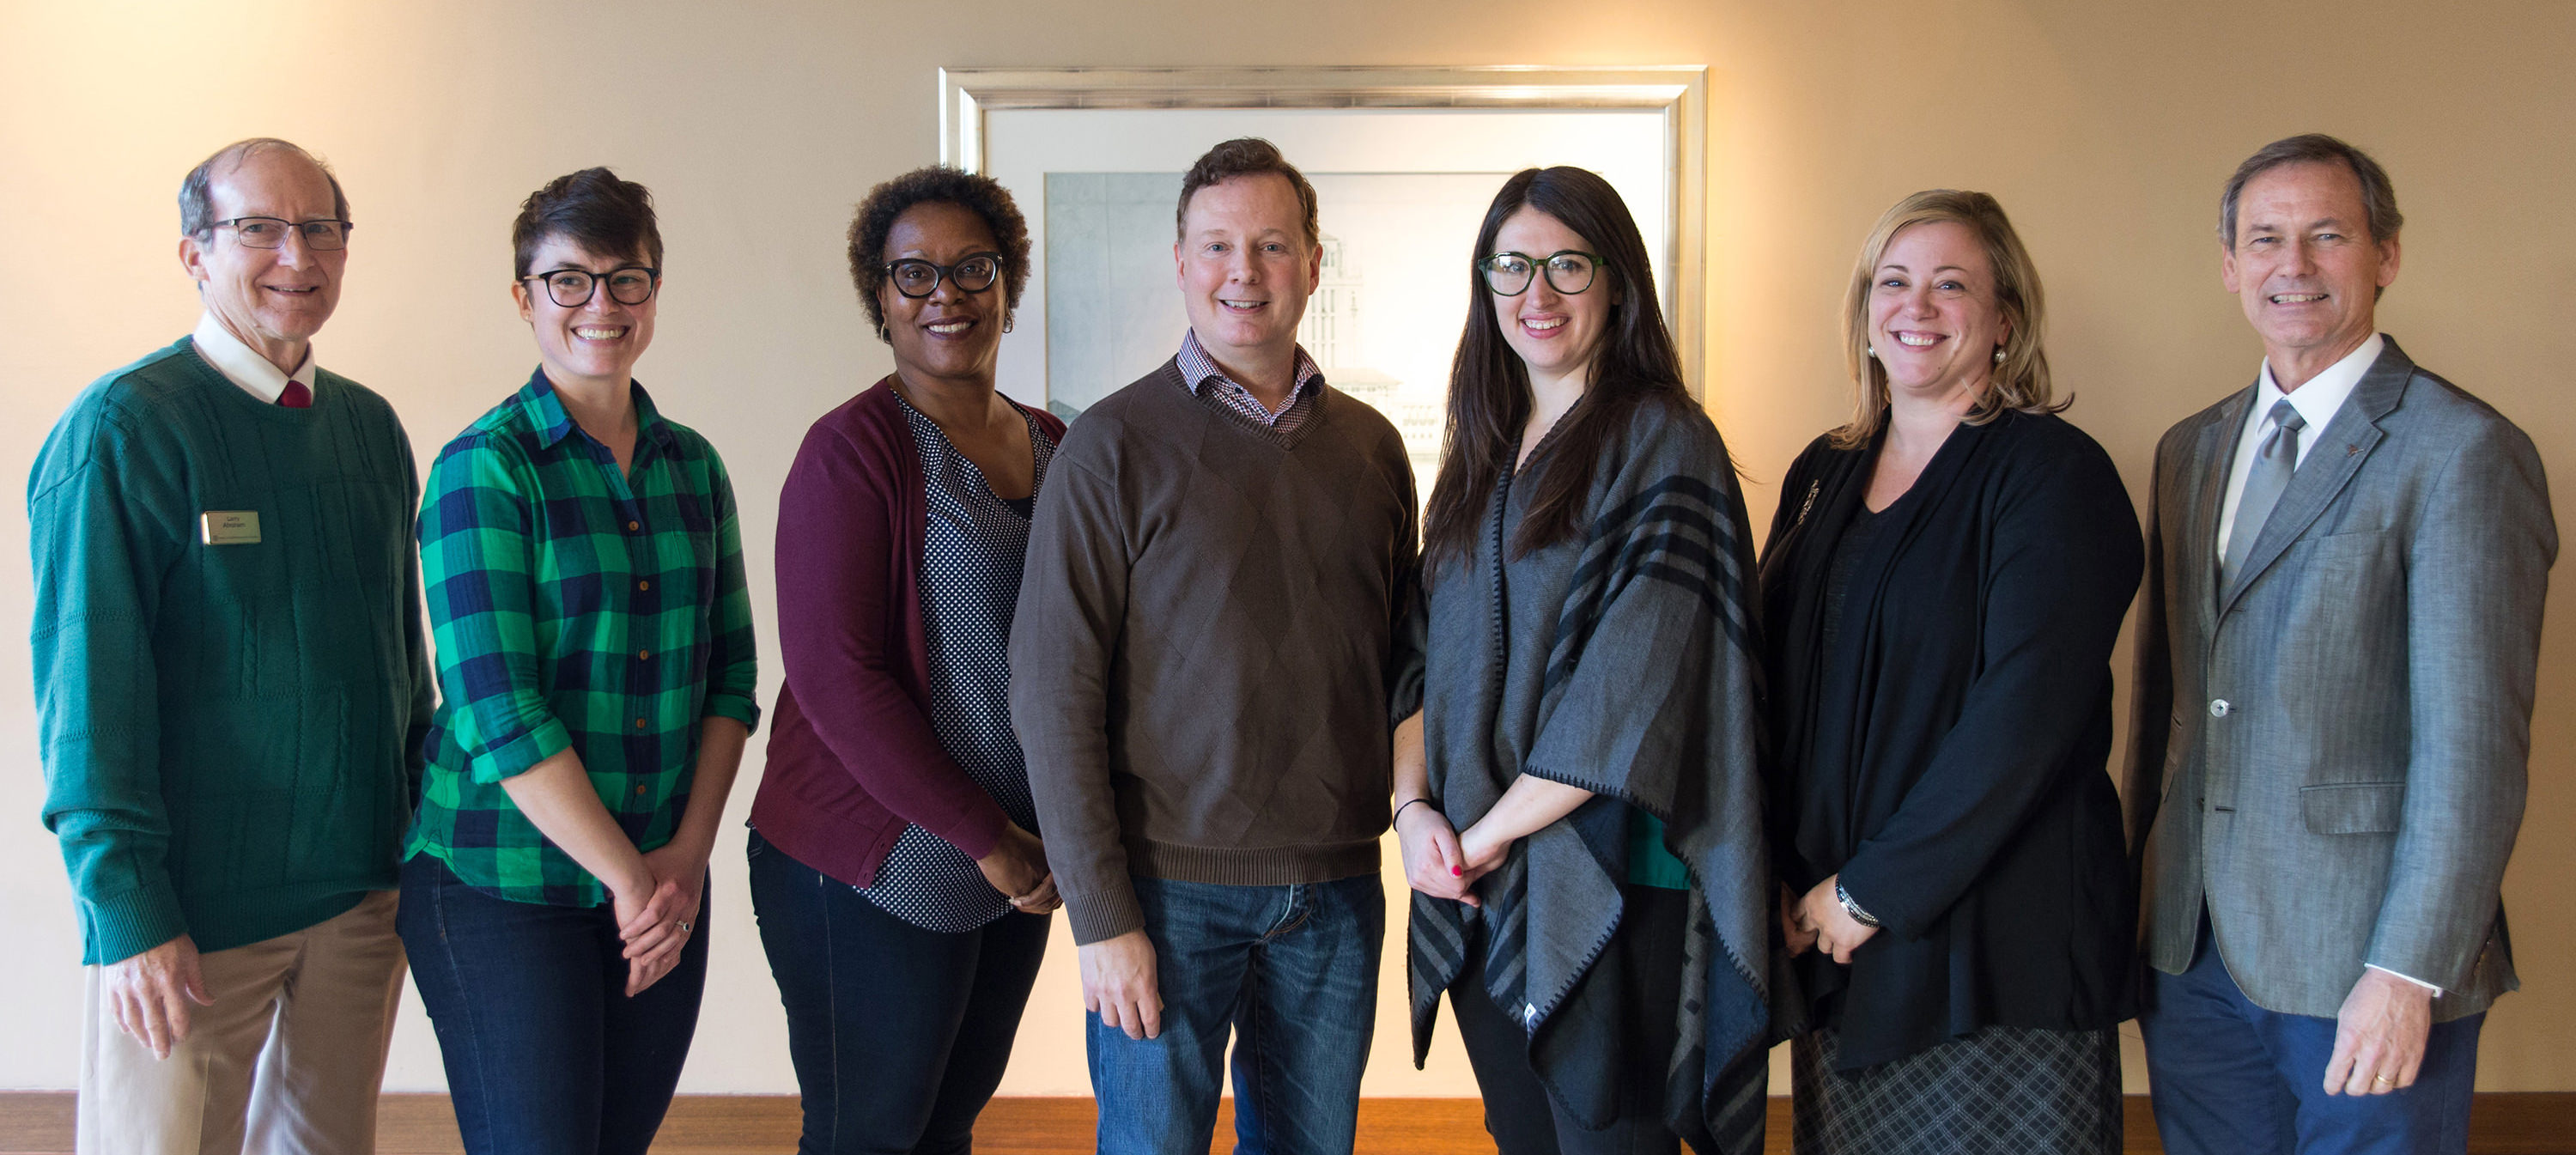 Associate Dean Larry Abraham, Kelly Frazer, Tamela Walker, Alan Grimes, Anne Bradley, Patty Micks, and Dean Brent Iverson. Laura Costello not pictured.